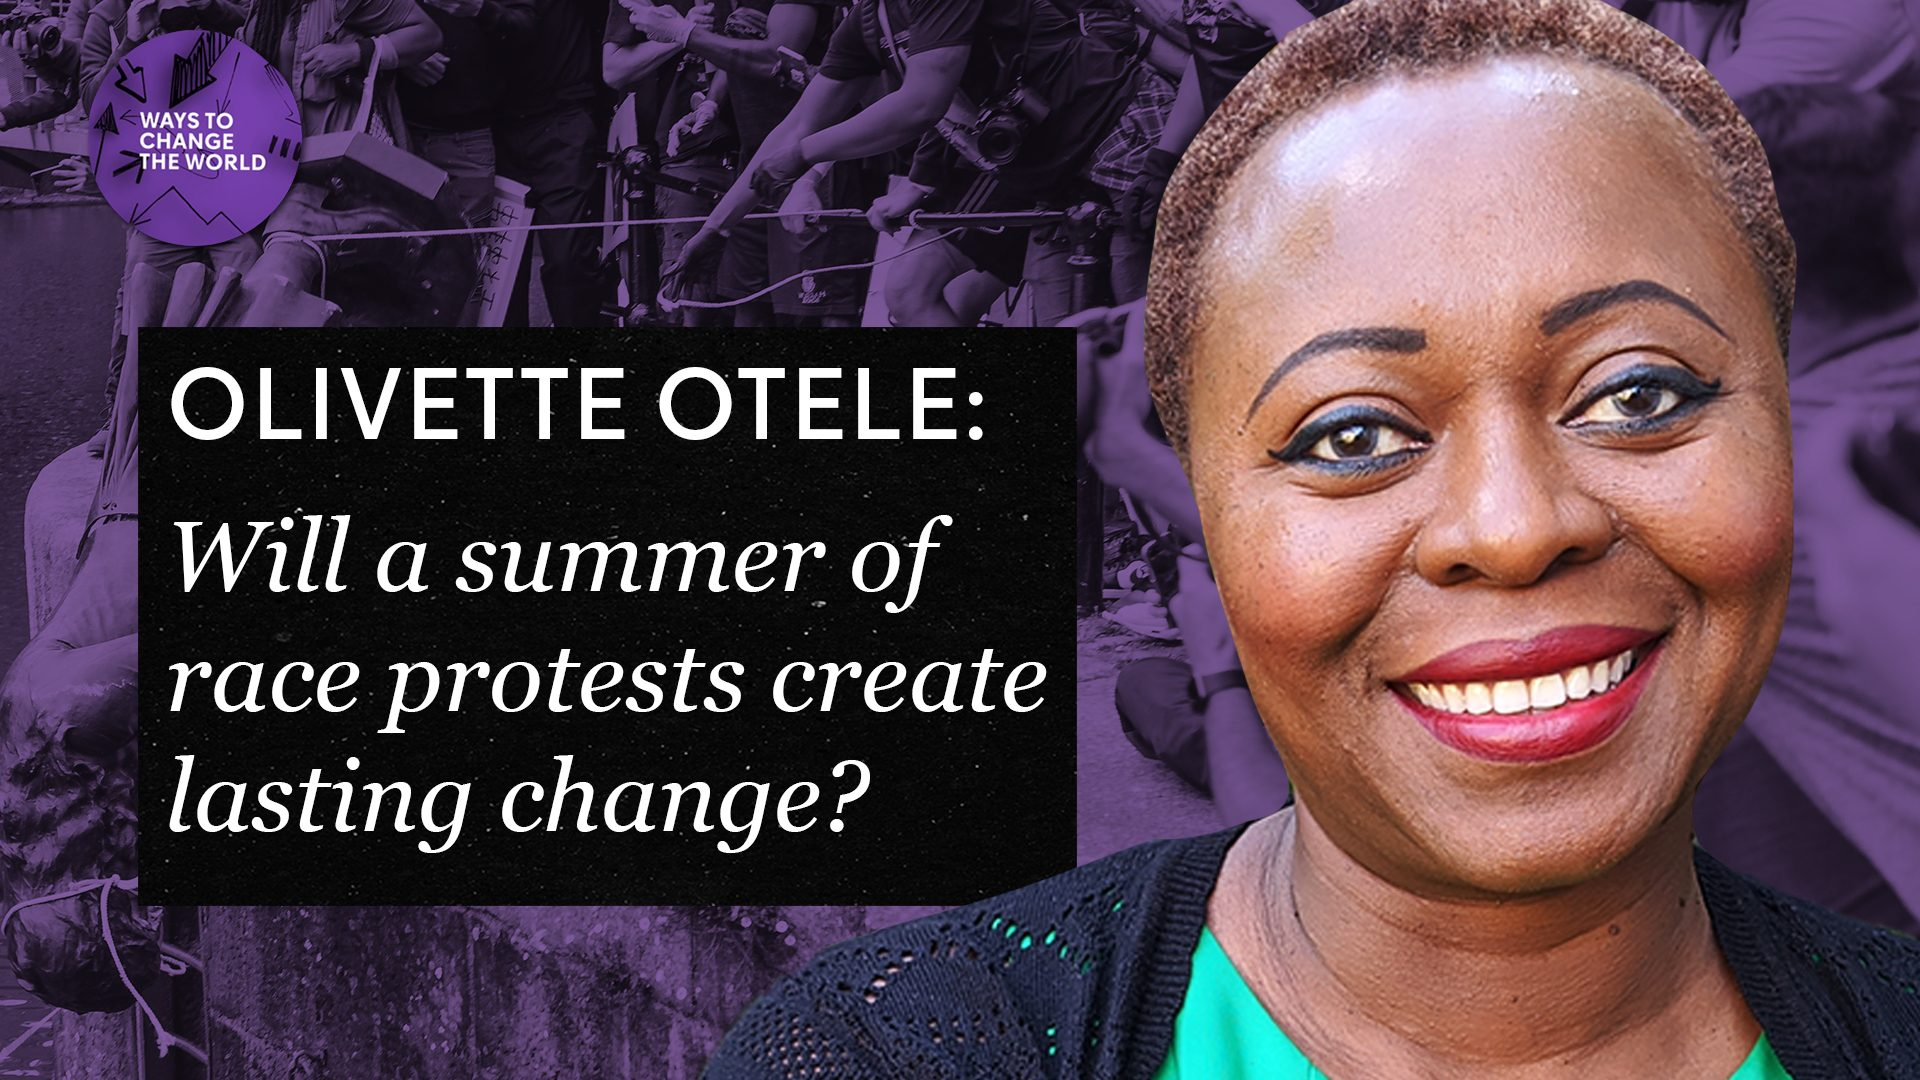 Series 6, Episode 9: Olivette Otele